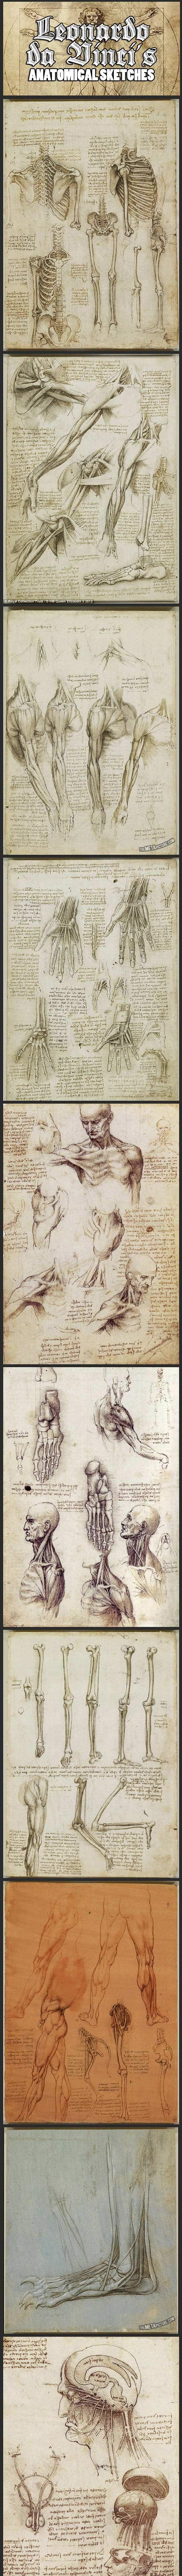 cool-Leonardo-DaVinci-anatomical-sketches